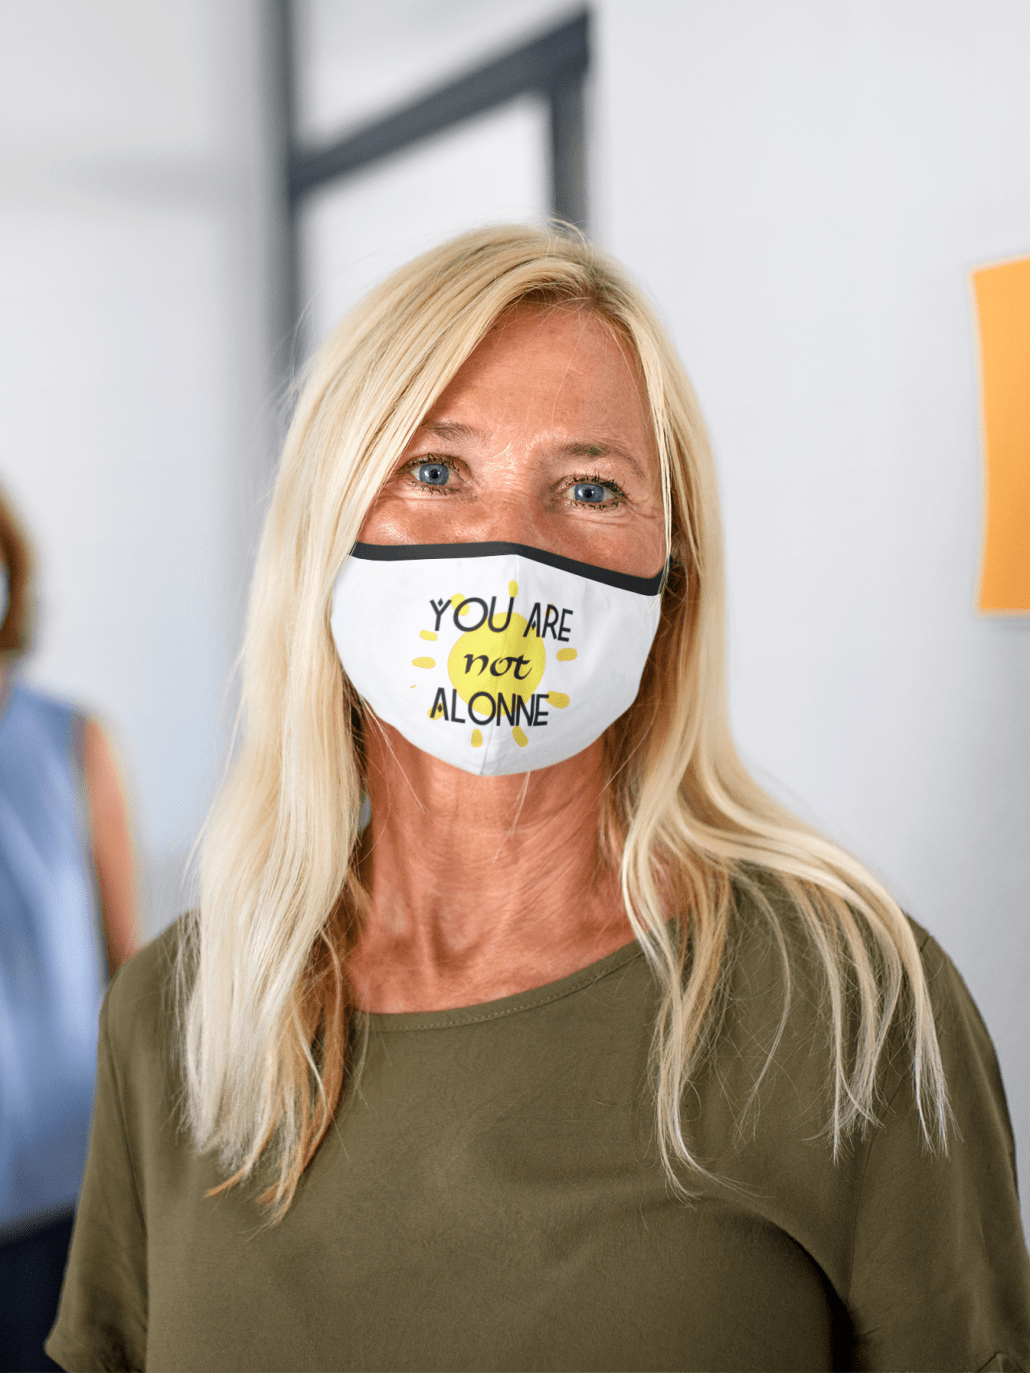 face mask mockup of a woman with blonde hair